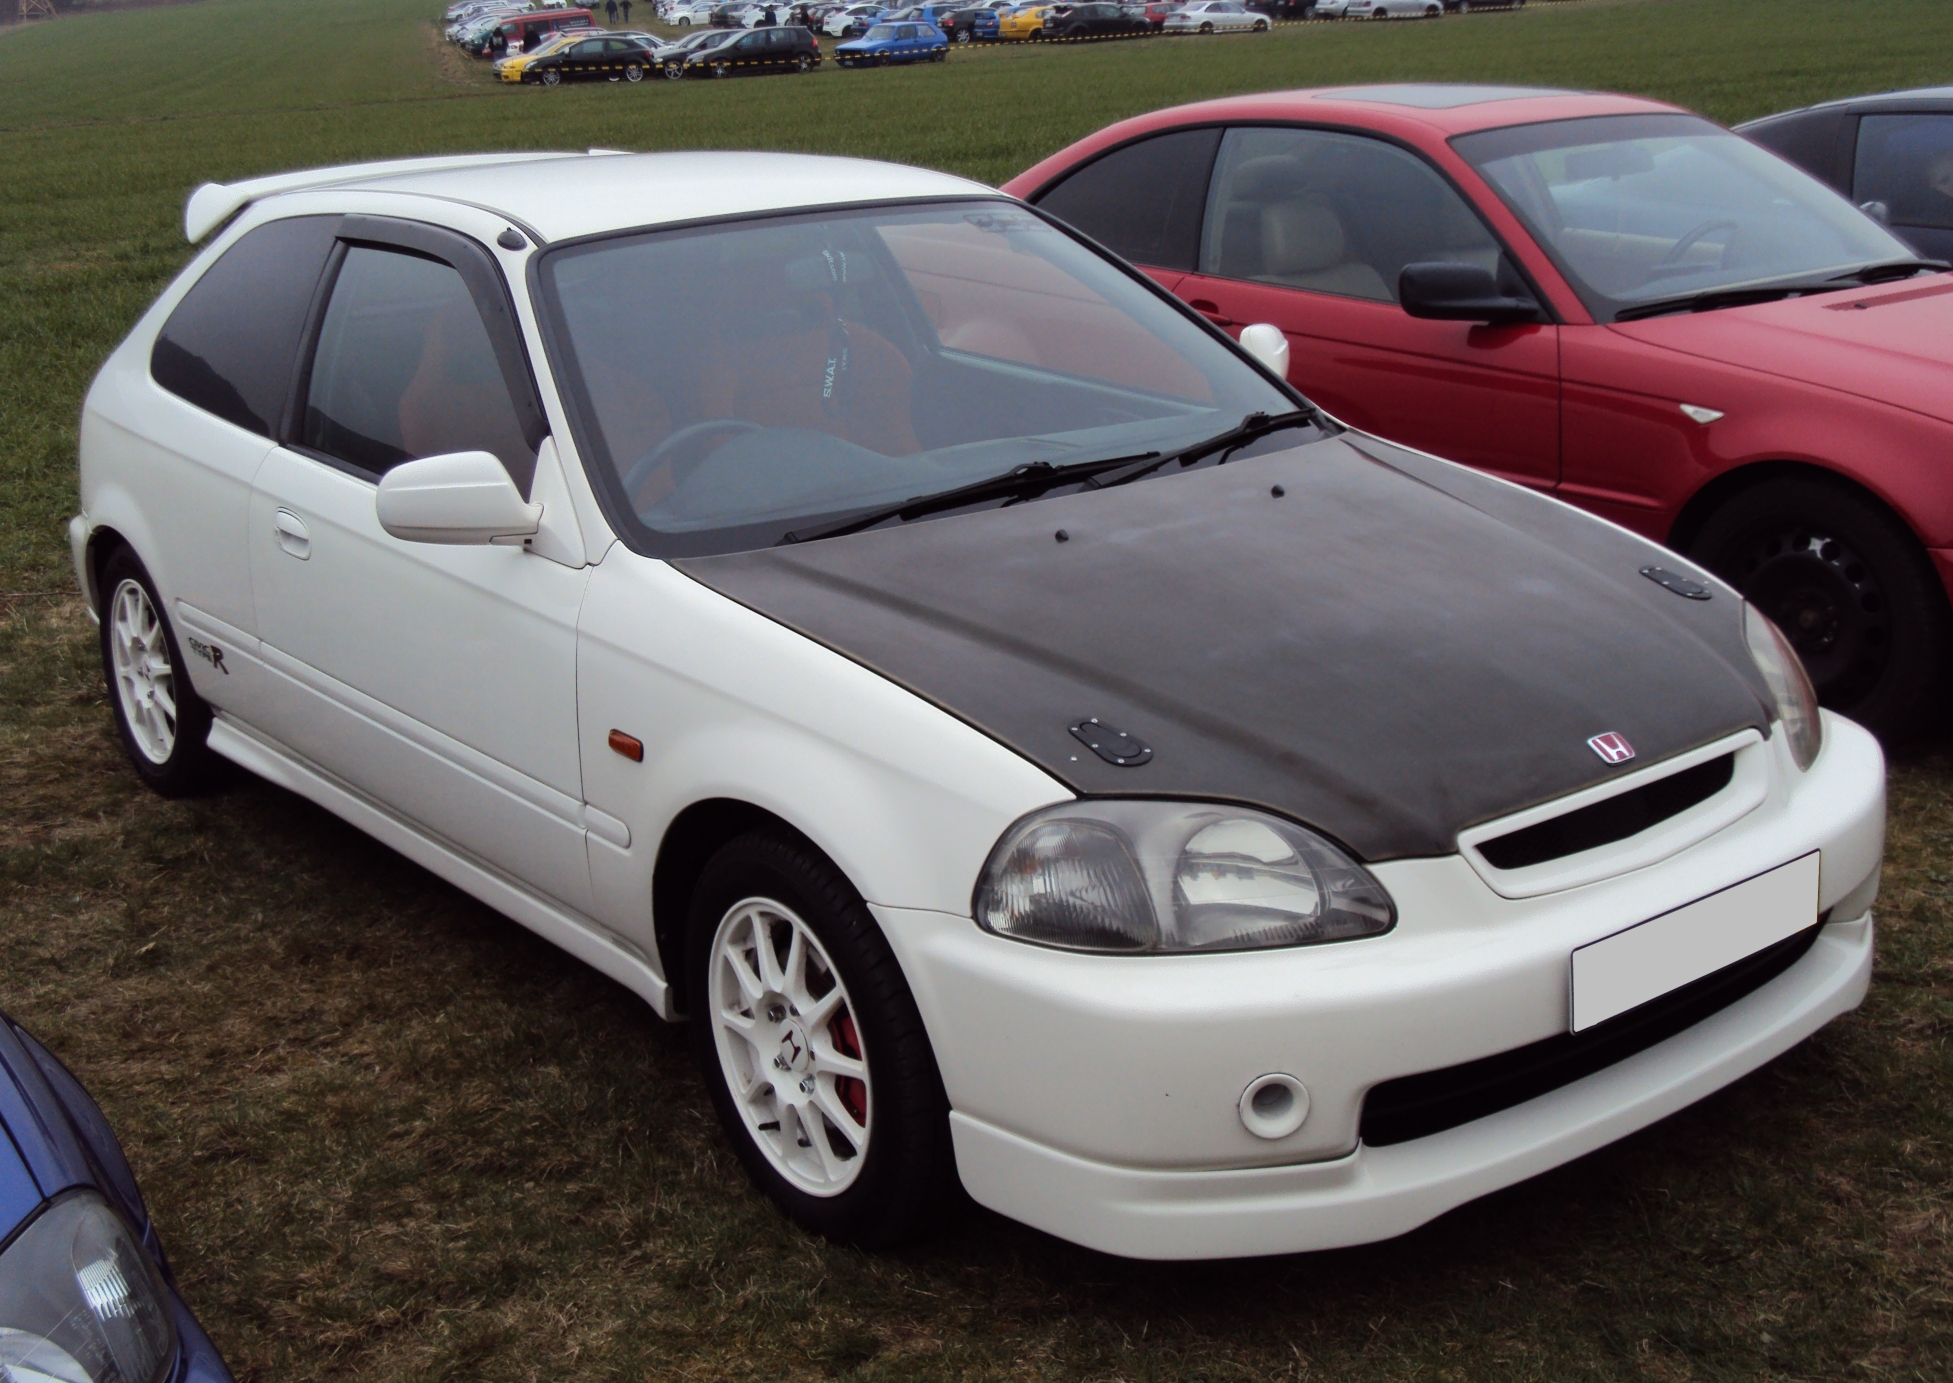 File:Civic Type R Front.JPG